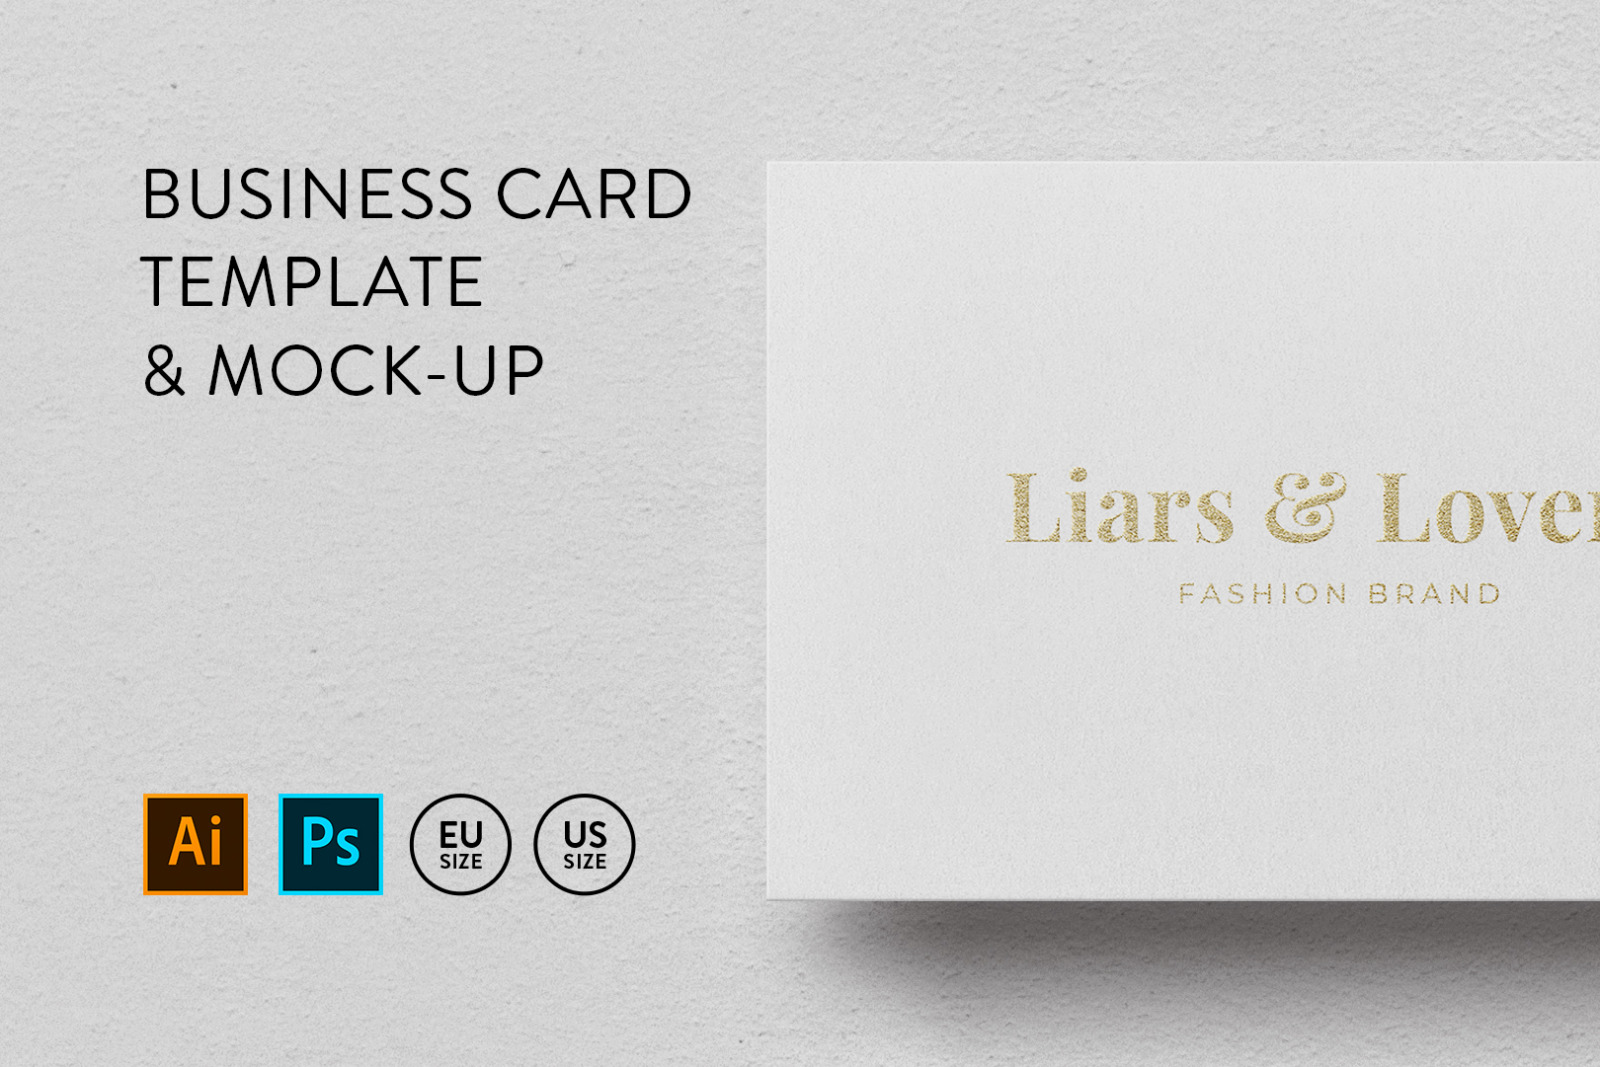 Business card Template & Mock-up #39